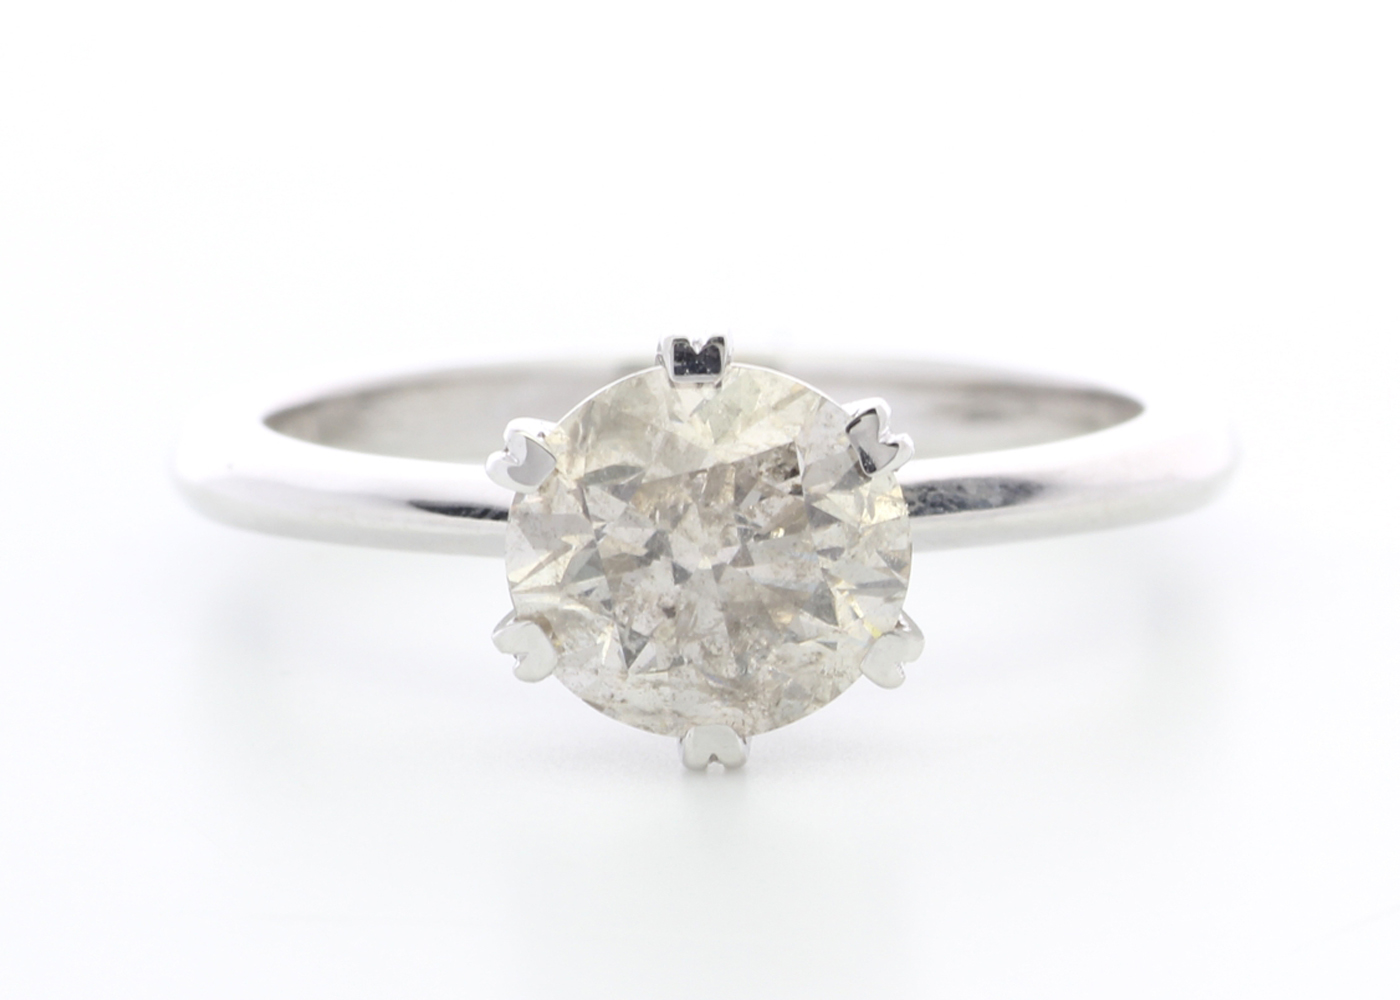 Lot 11 - 18ct White Gold Single Stone Claw Set Diamond Ring 1.70 Carats